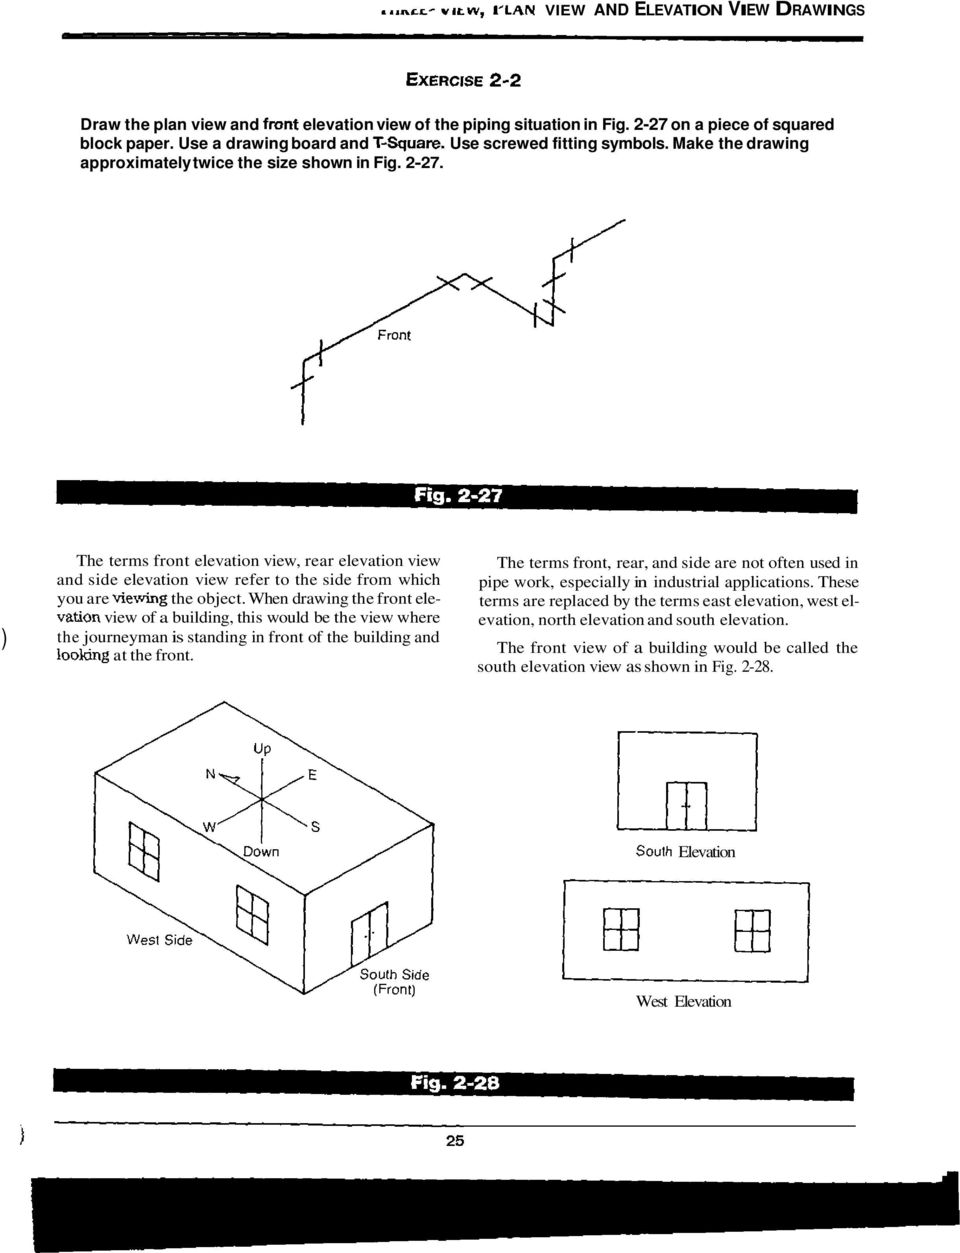 Three View Plan And Elevation Drawings Pdf Piping Diagram Symbols Union The Terms Front Rear Side Refer To